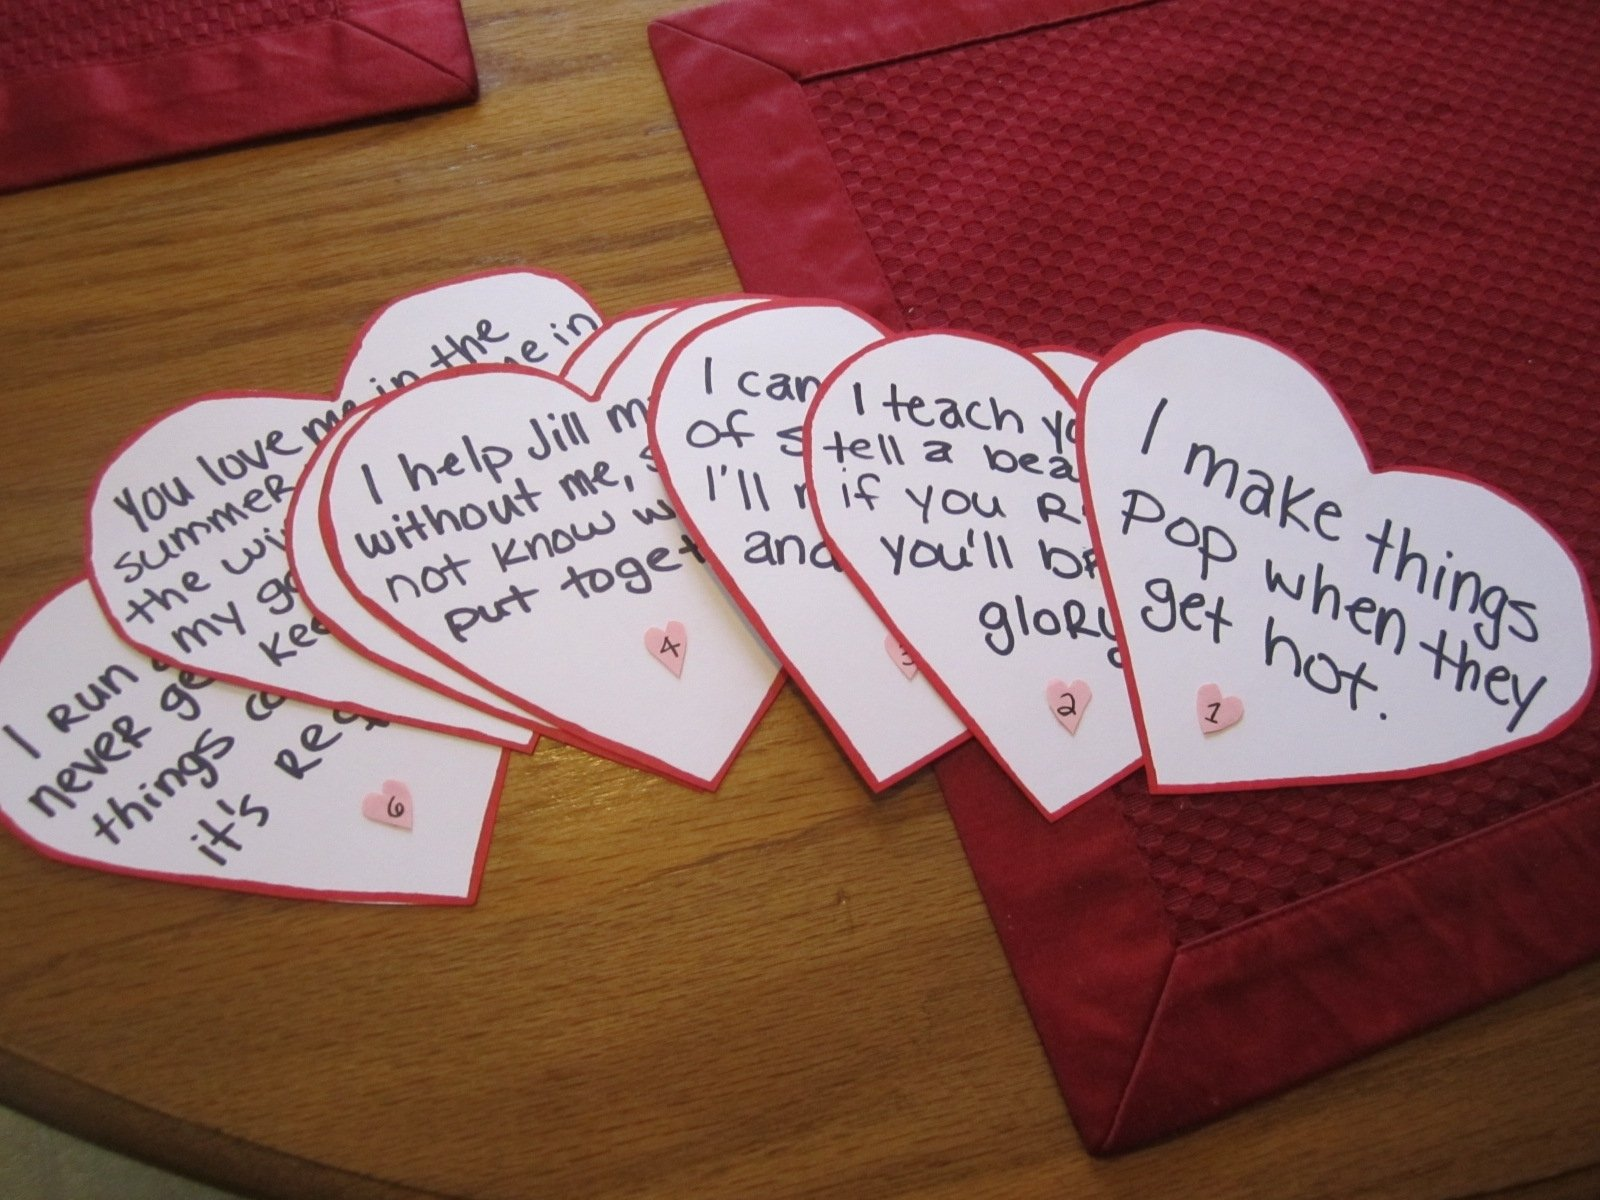 10 Wonderful Ideas For Valentines Day For Him valentine day ideas for boyfriend tempting him as wells as day gifts 4